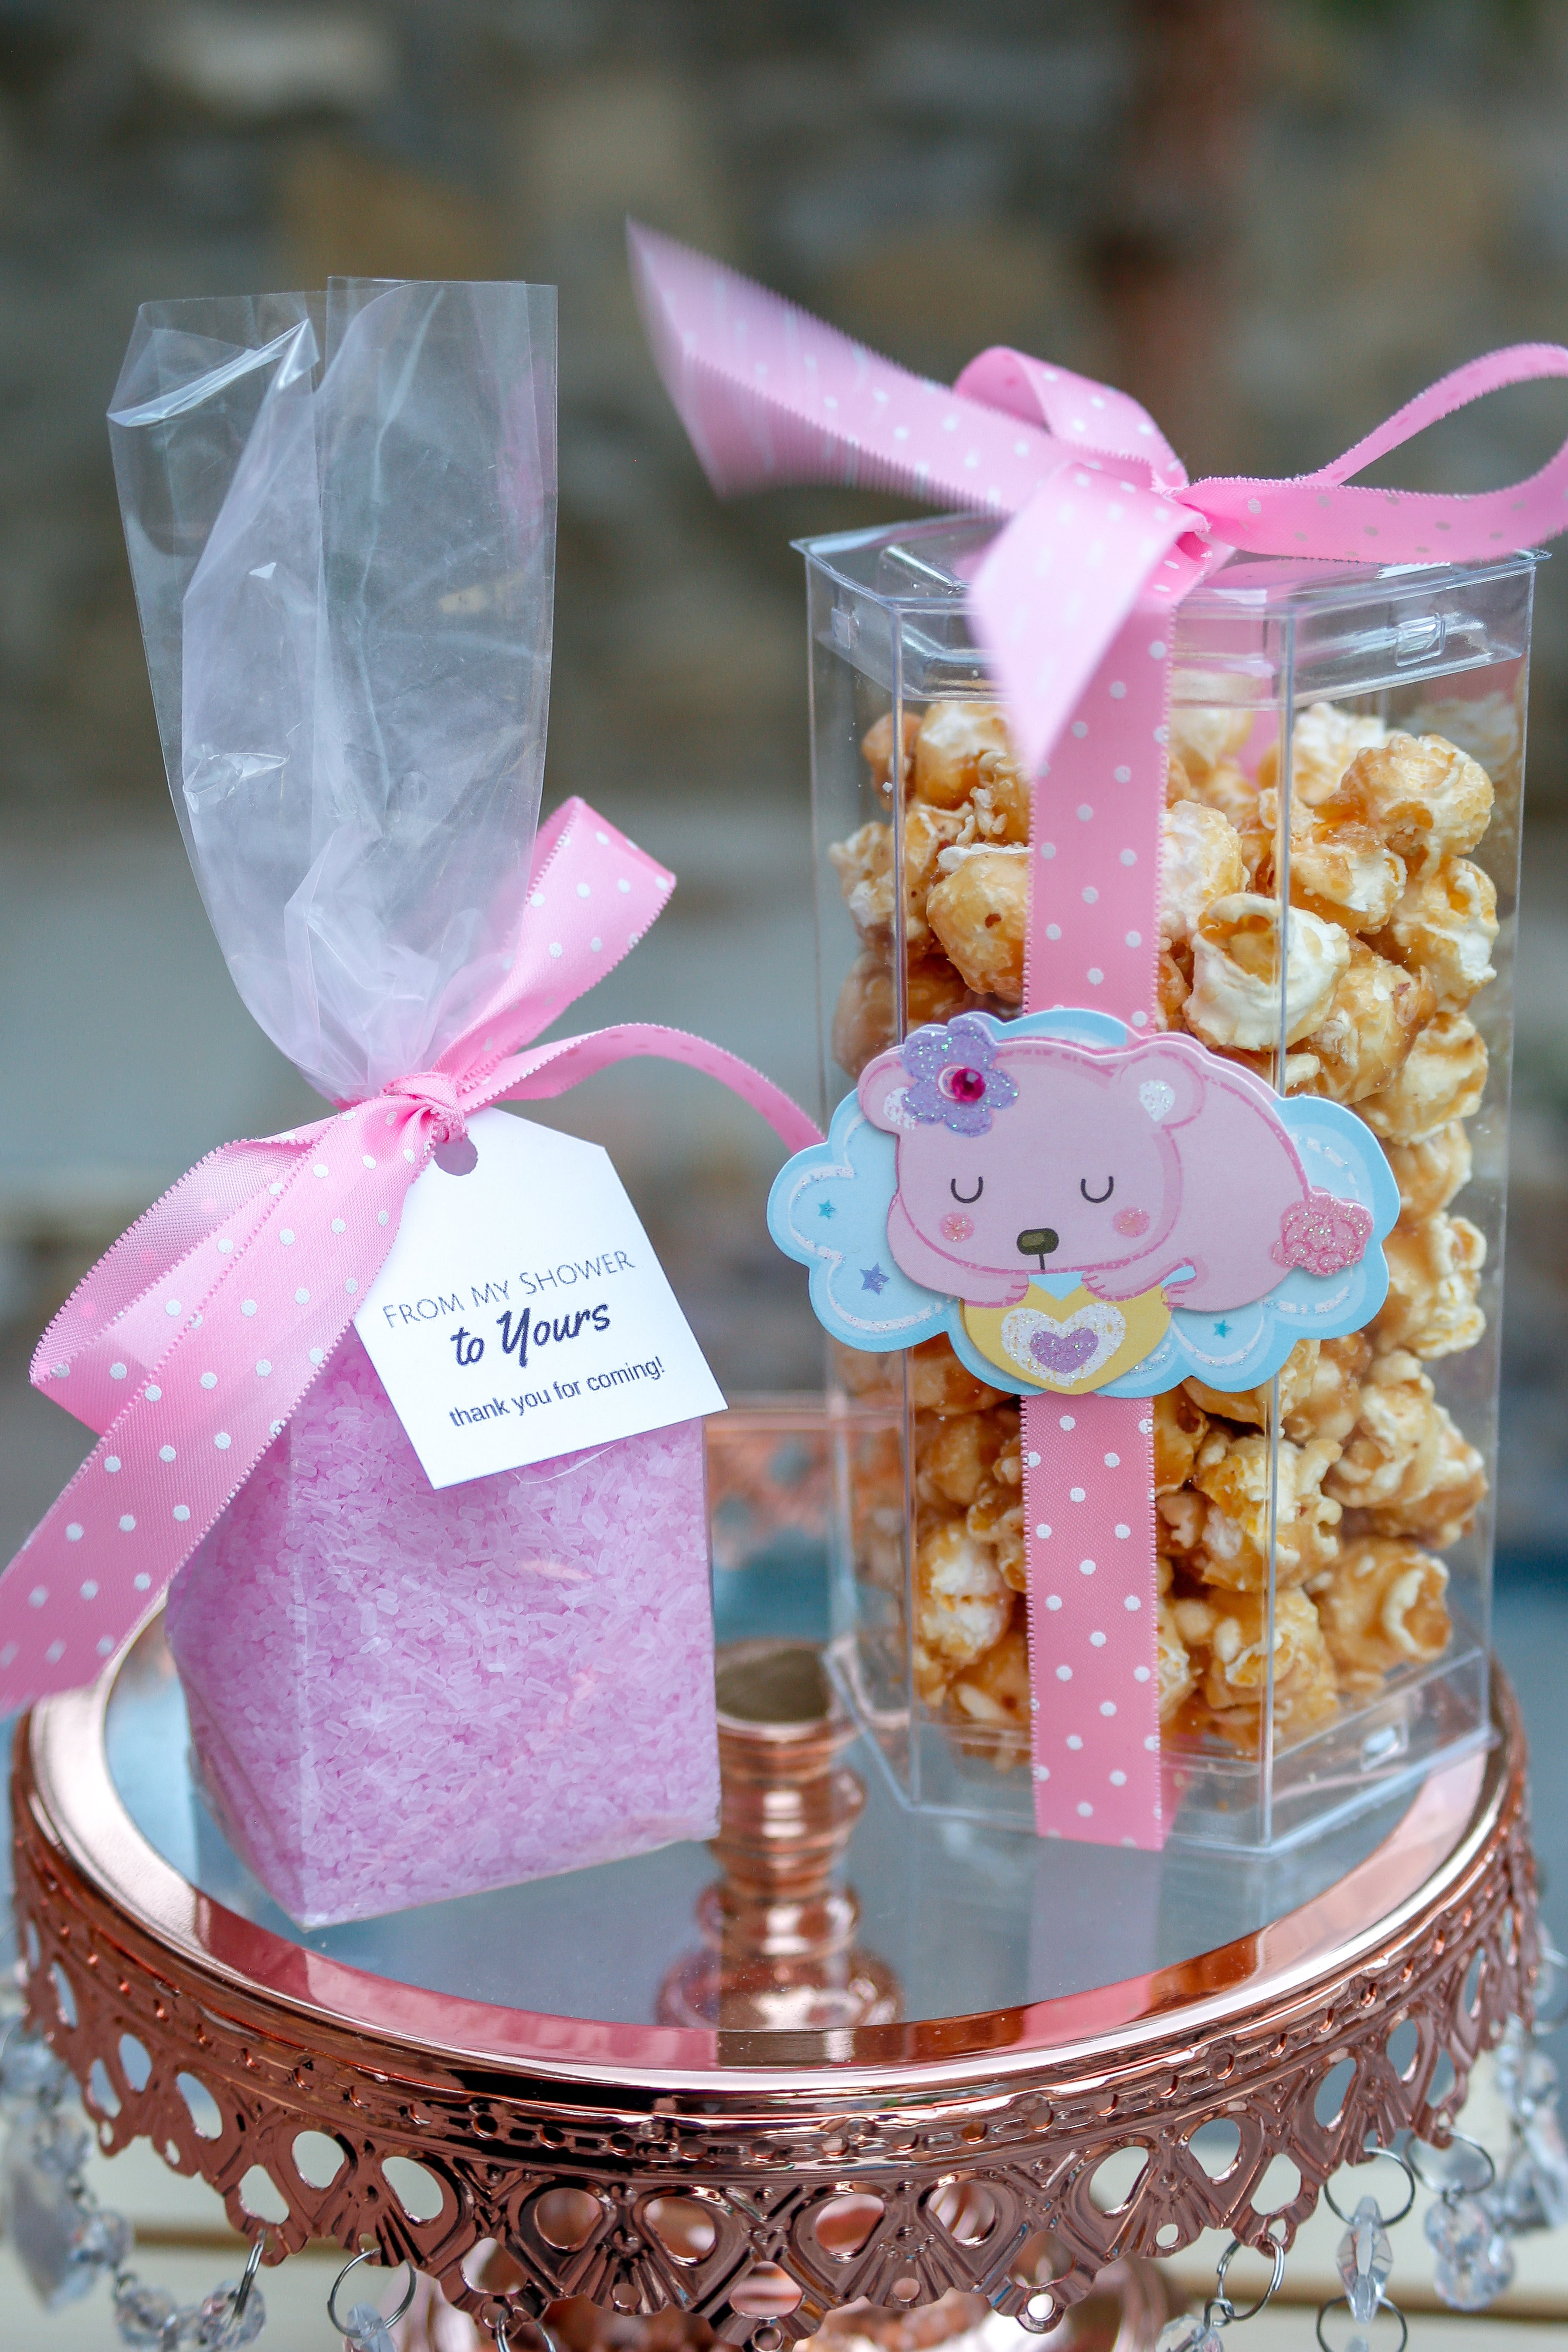 Best ideas about Baby Shower DIY . Save or Pin DIY Baby Shower Favor Ideas Now.